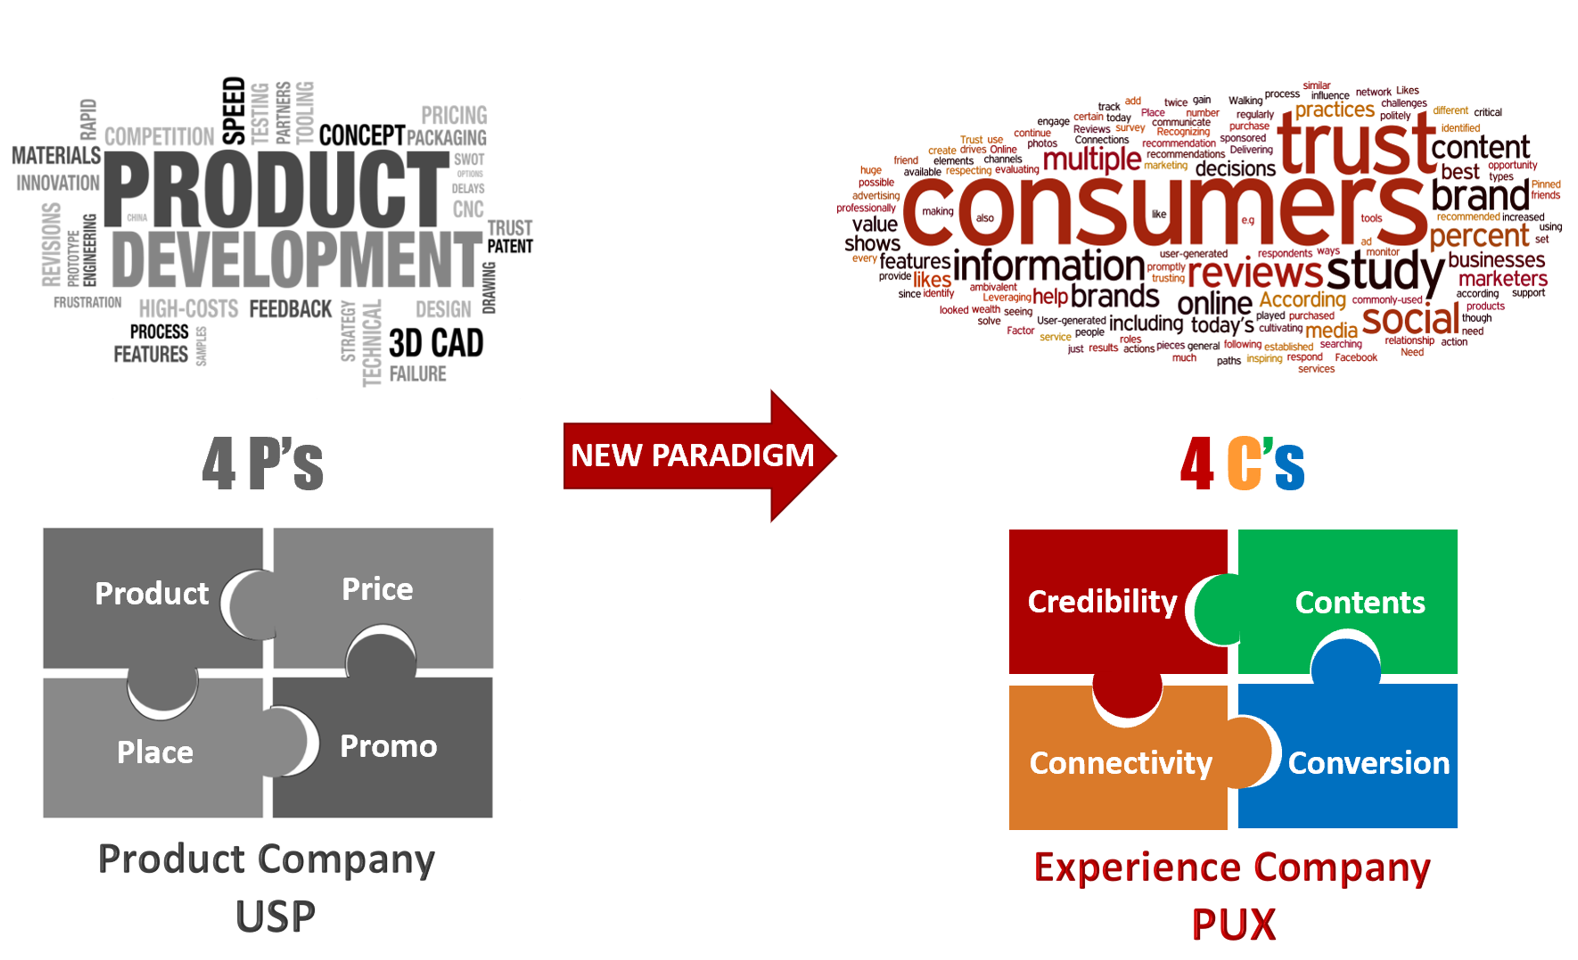 CHANGE THE PARADIGM from 4Ps marketing to 4Cs marketing